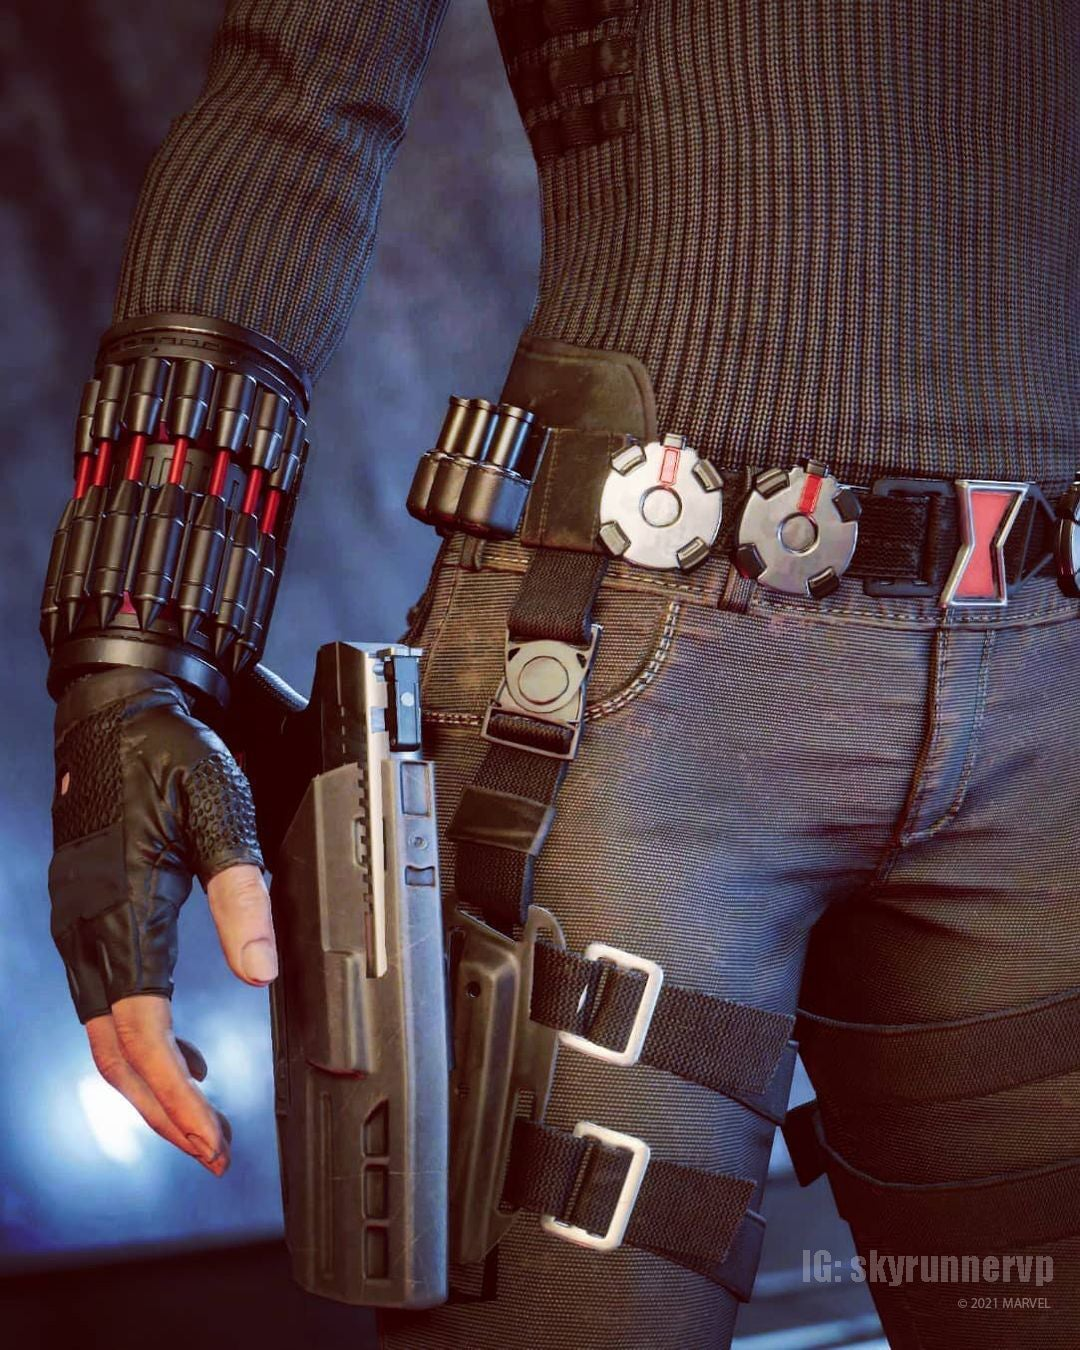 """A screenshot closeup of Black Widow's tool belt. A black pistol sits snug in its hip holster. She wears her """"Widow's Bite"""" around her wrist, which is a series of small red and black mini rockets that strike enemies with electroshock damage. Her belt buckle is the iconic red hourglass symbol of the black widow spider."""